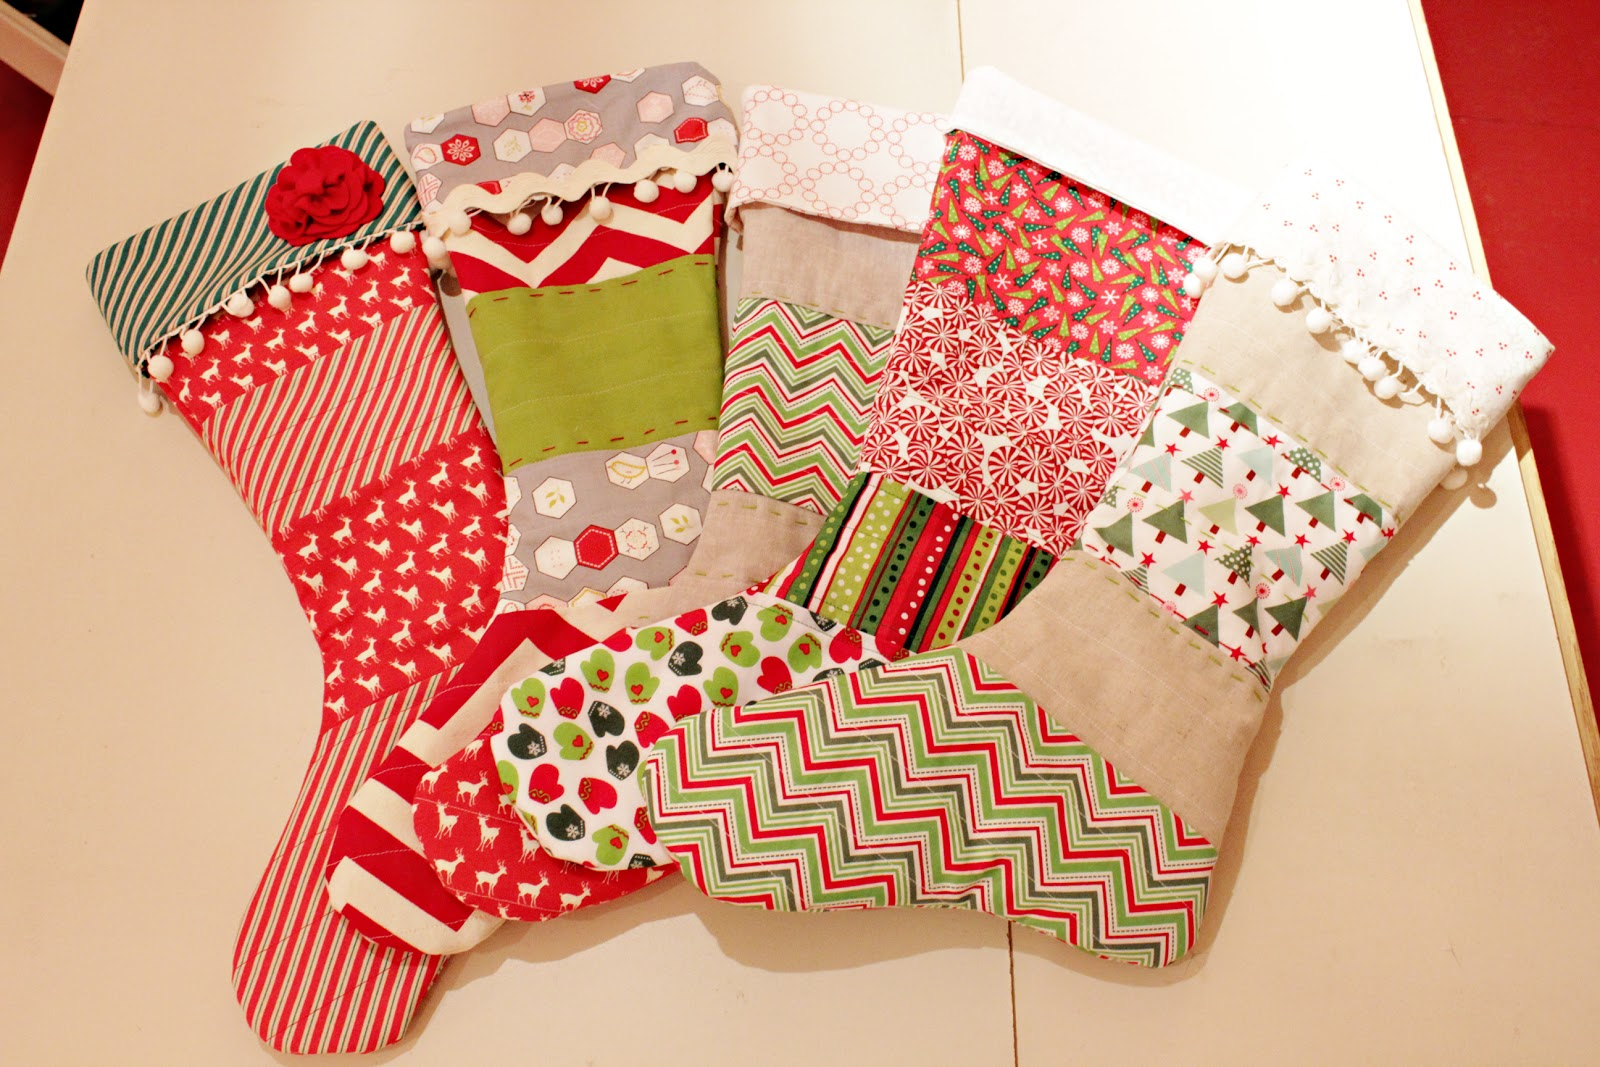 Handmade Christmas Stockings Handmade Christmas Stockings Stickpinbencom